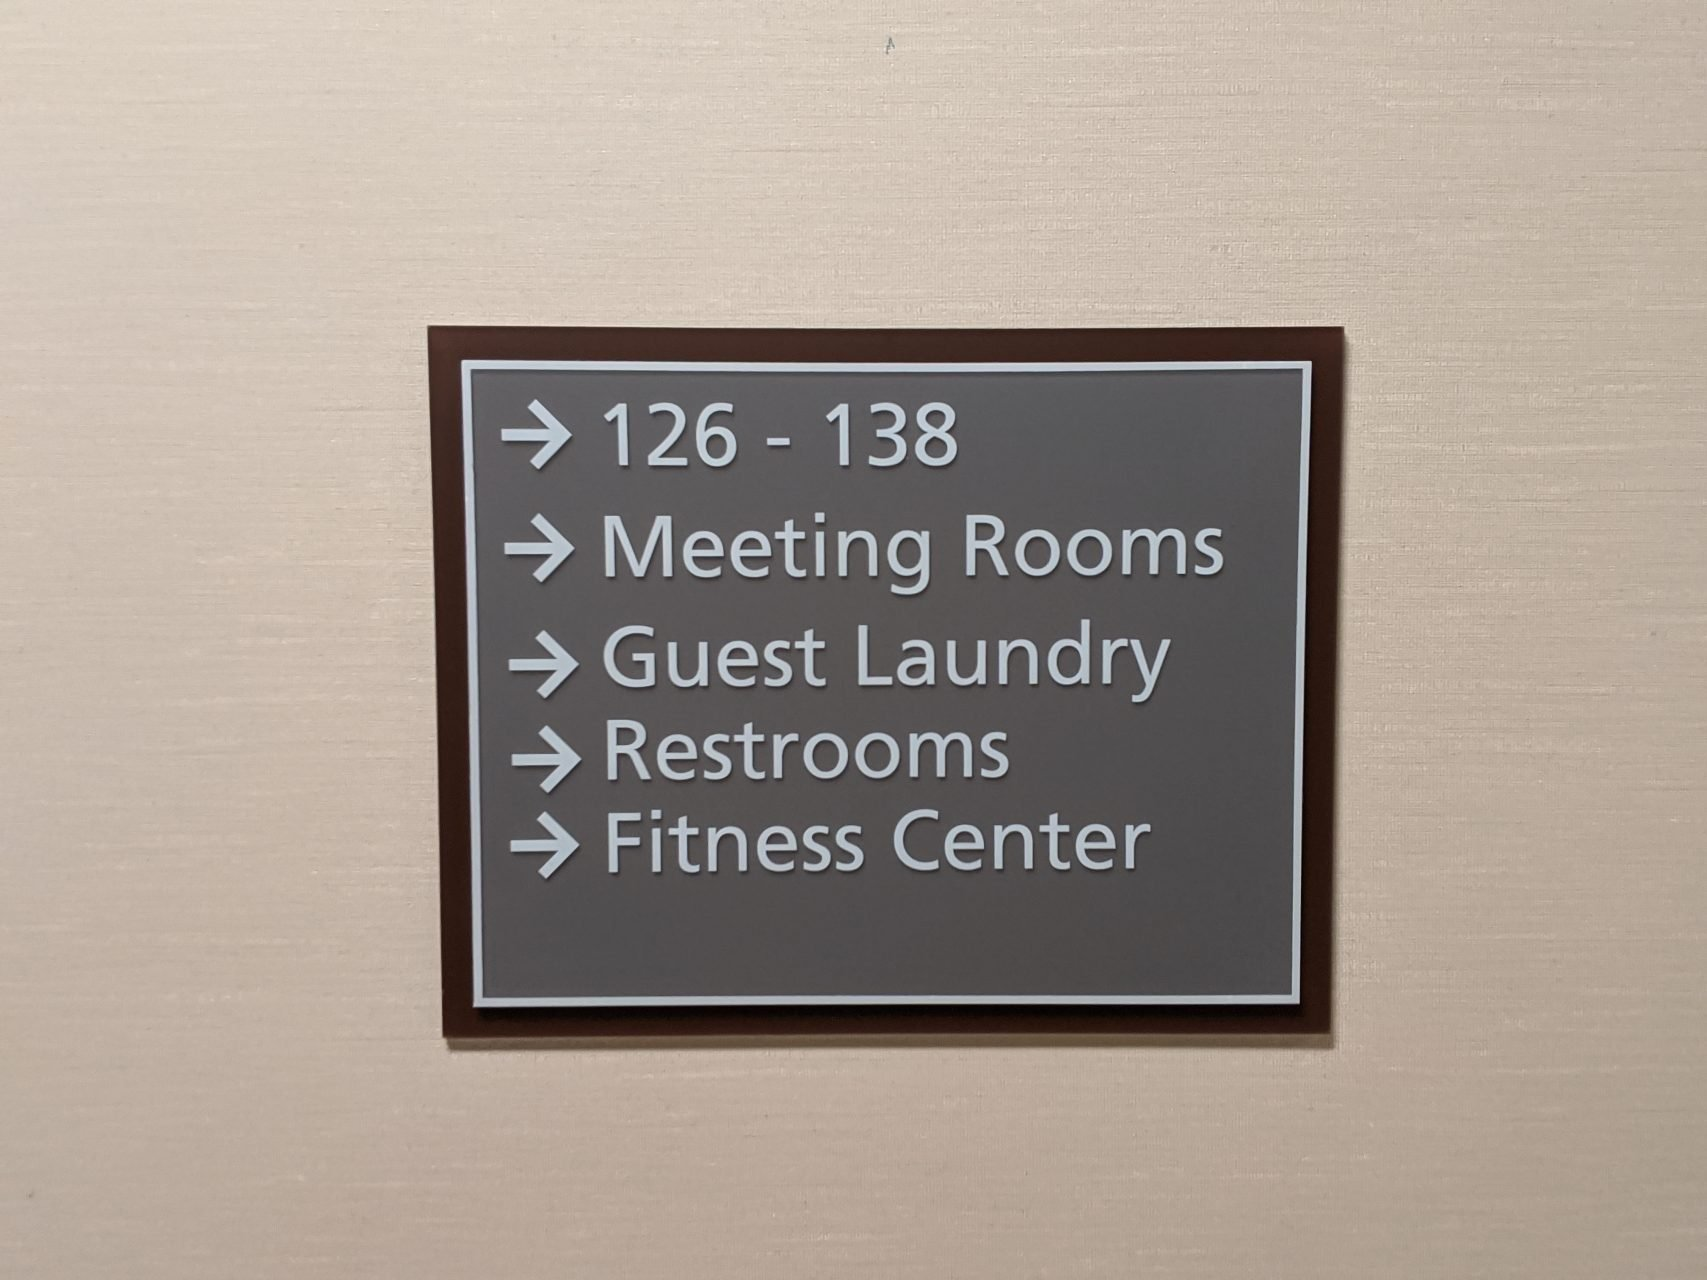 Hotel Wayfinding Signs - Sequoia Signs Contra Costa